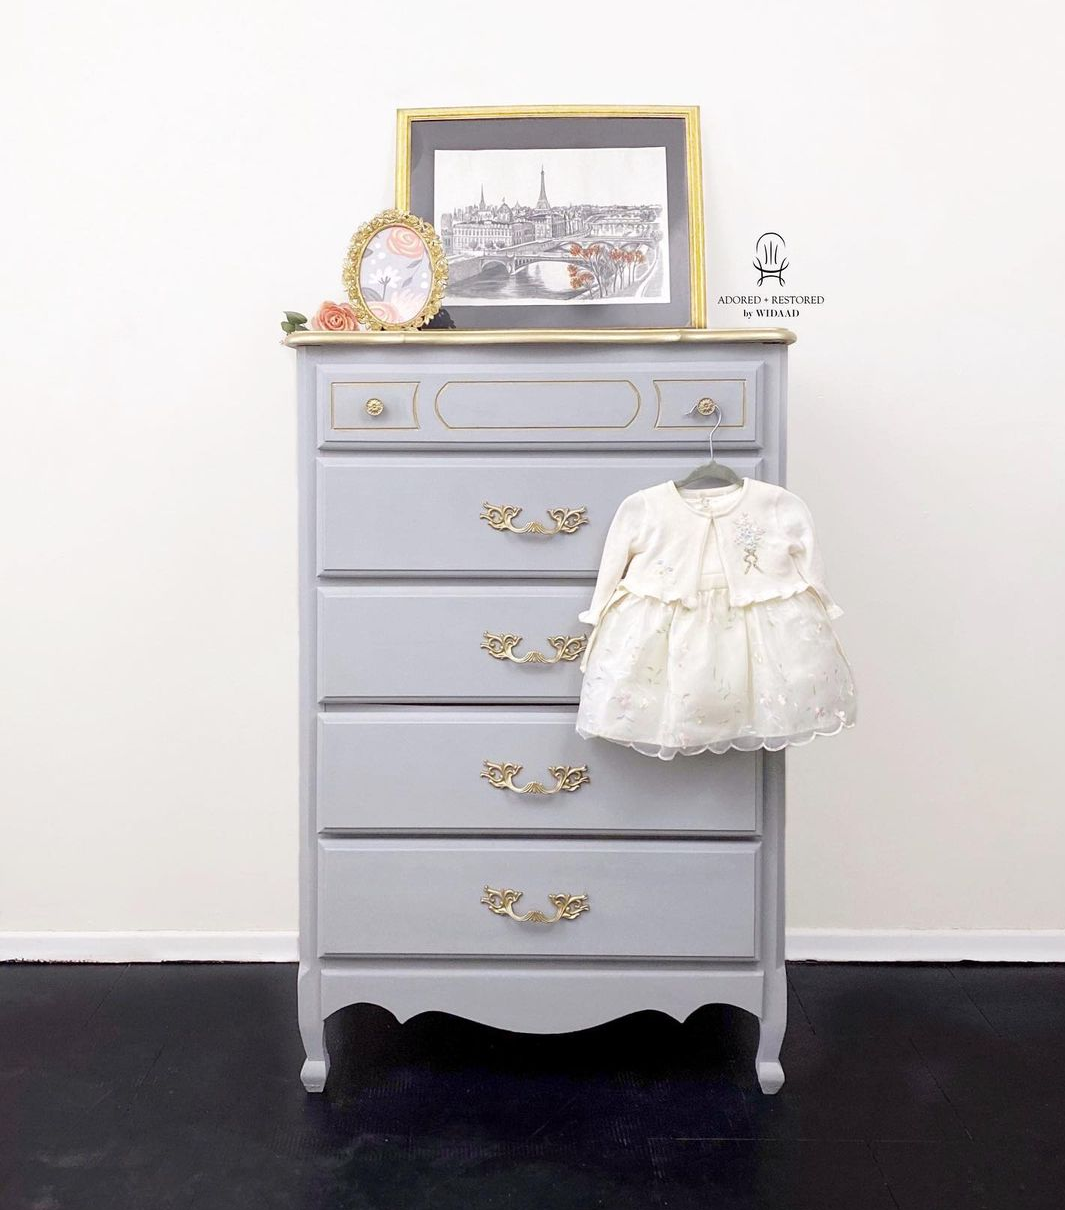 Tall Dresser in Cut a Rug with Champagne Gold Accents